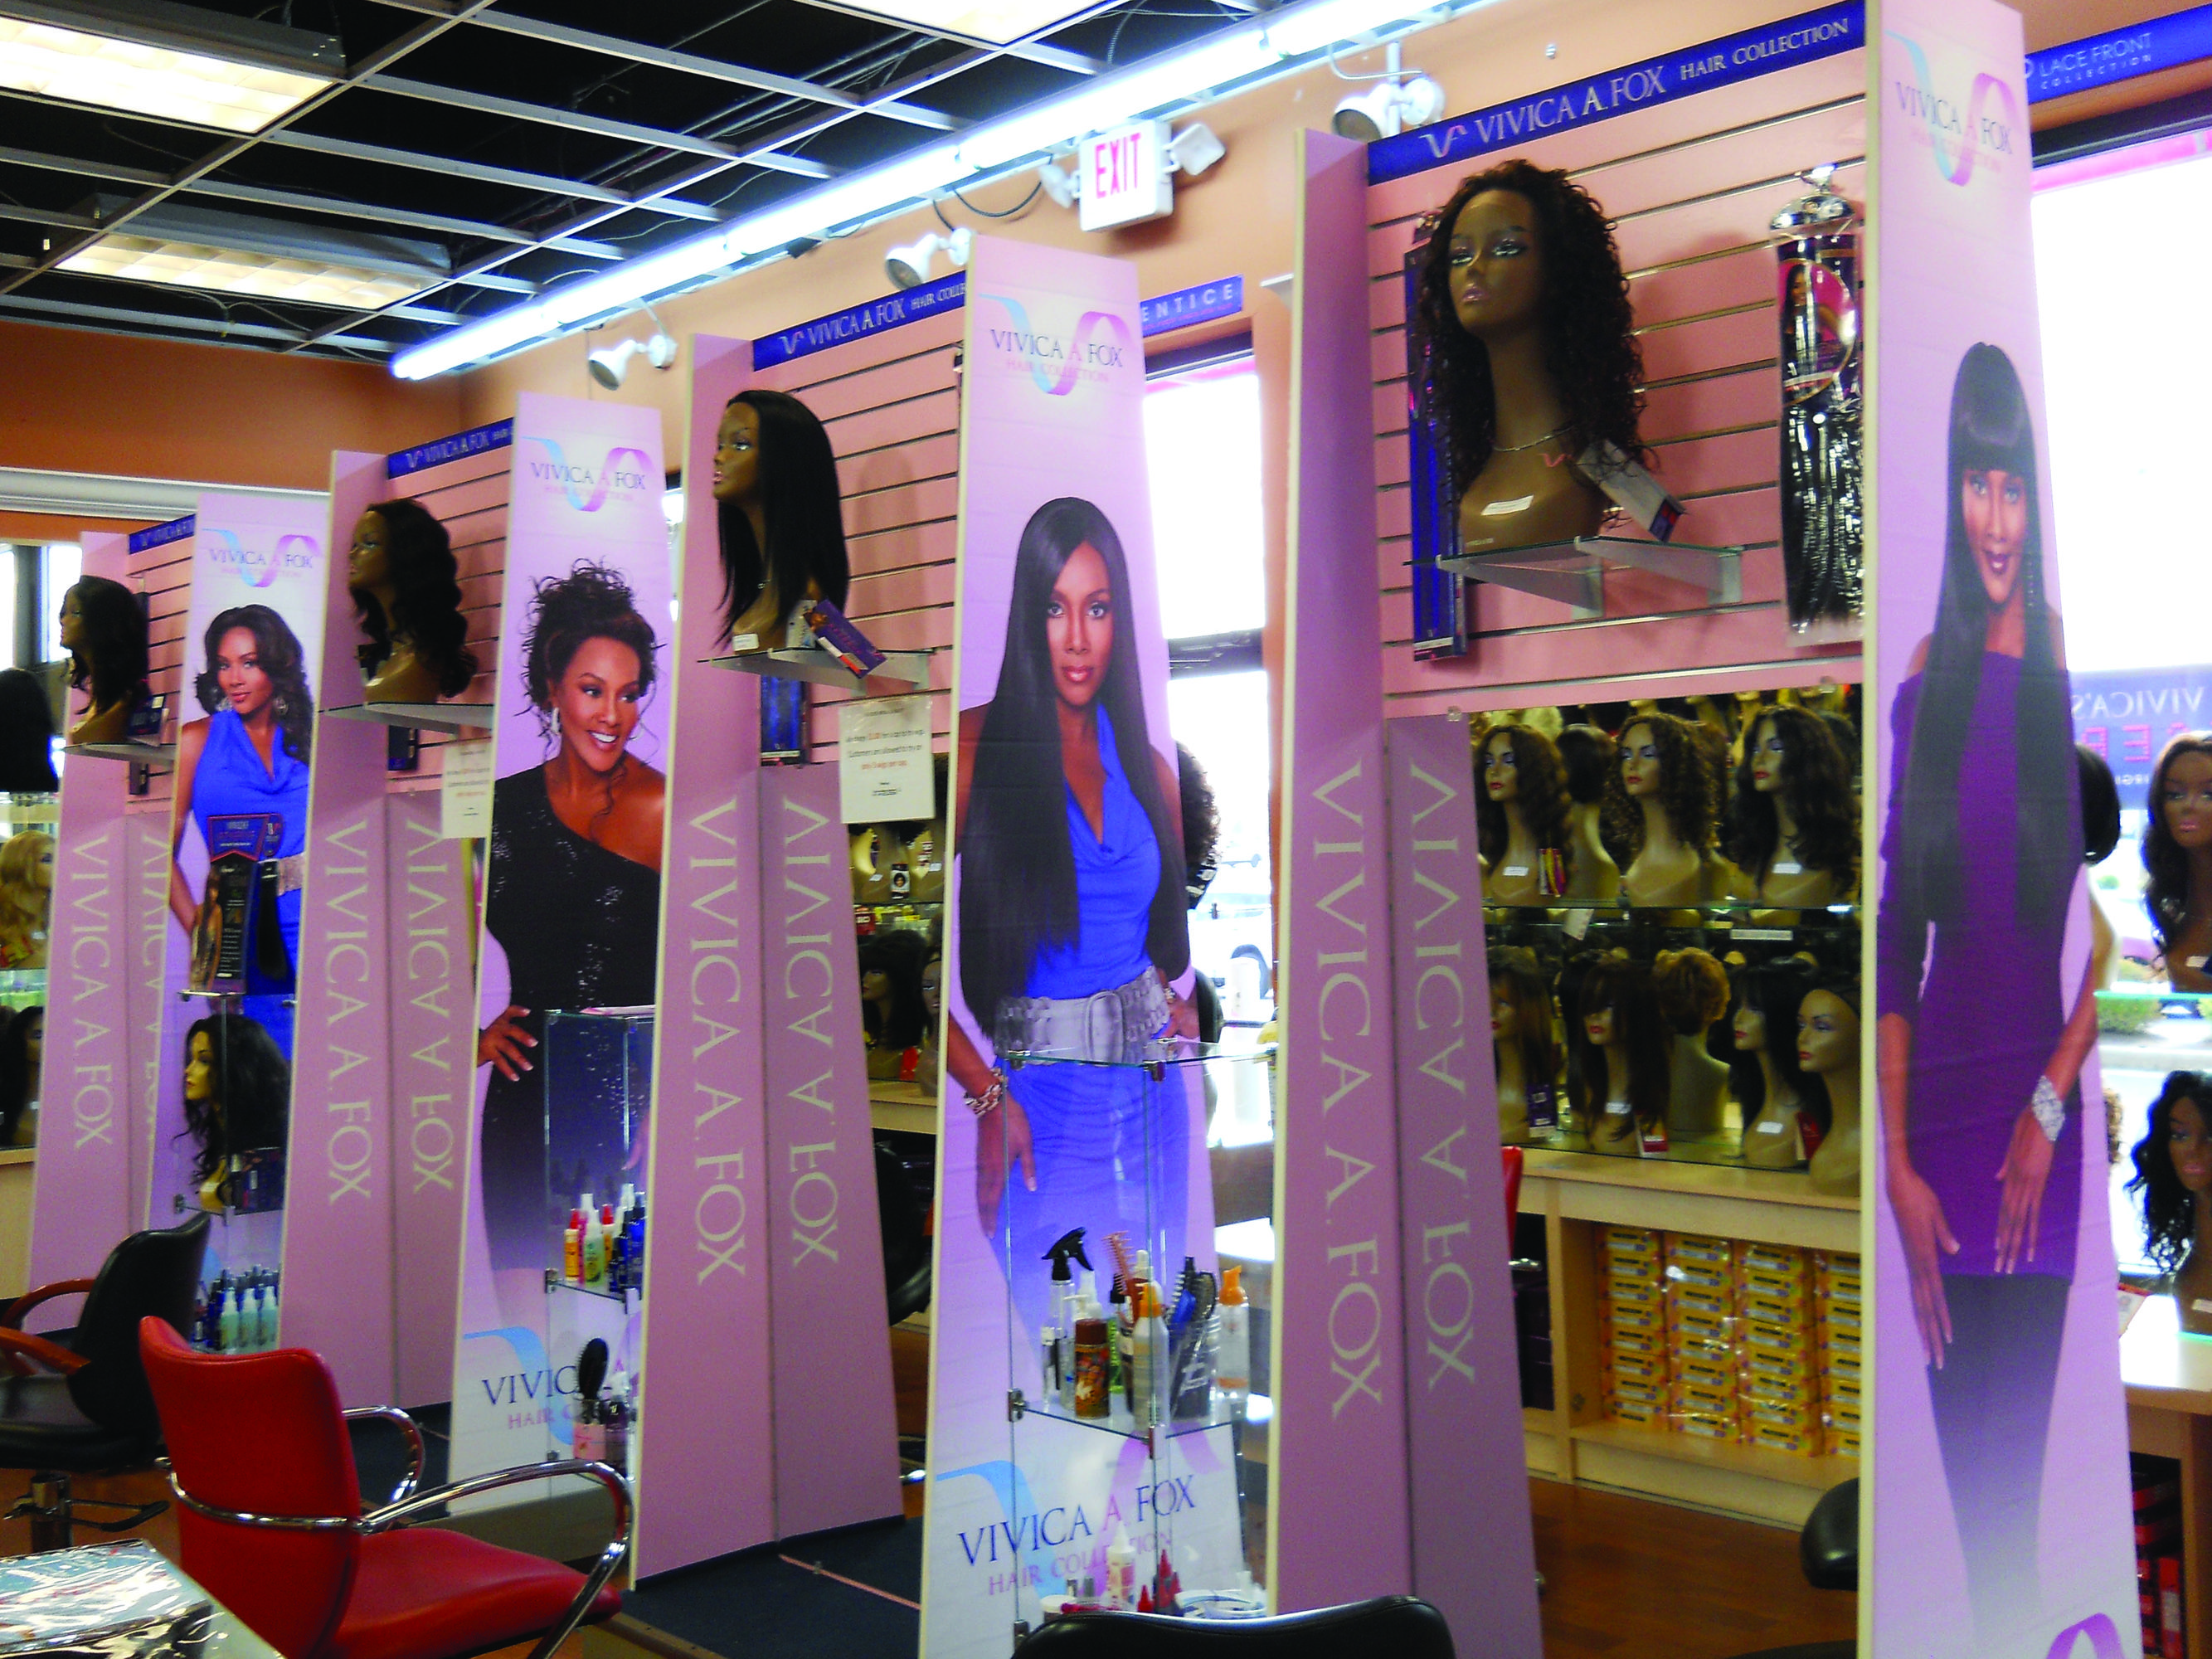 So Good Beauty Supply 3480 Steve Reynolds Blvd Duluth Ga 30096 678 474 4979 Hair Boutique Beauty Supply Store Wigs Hair Retail